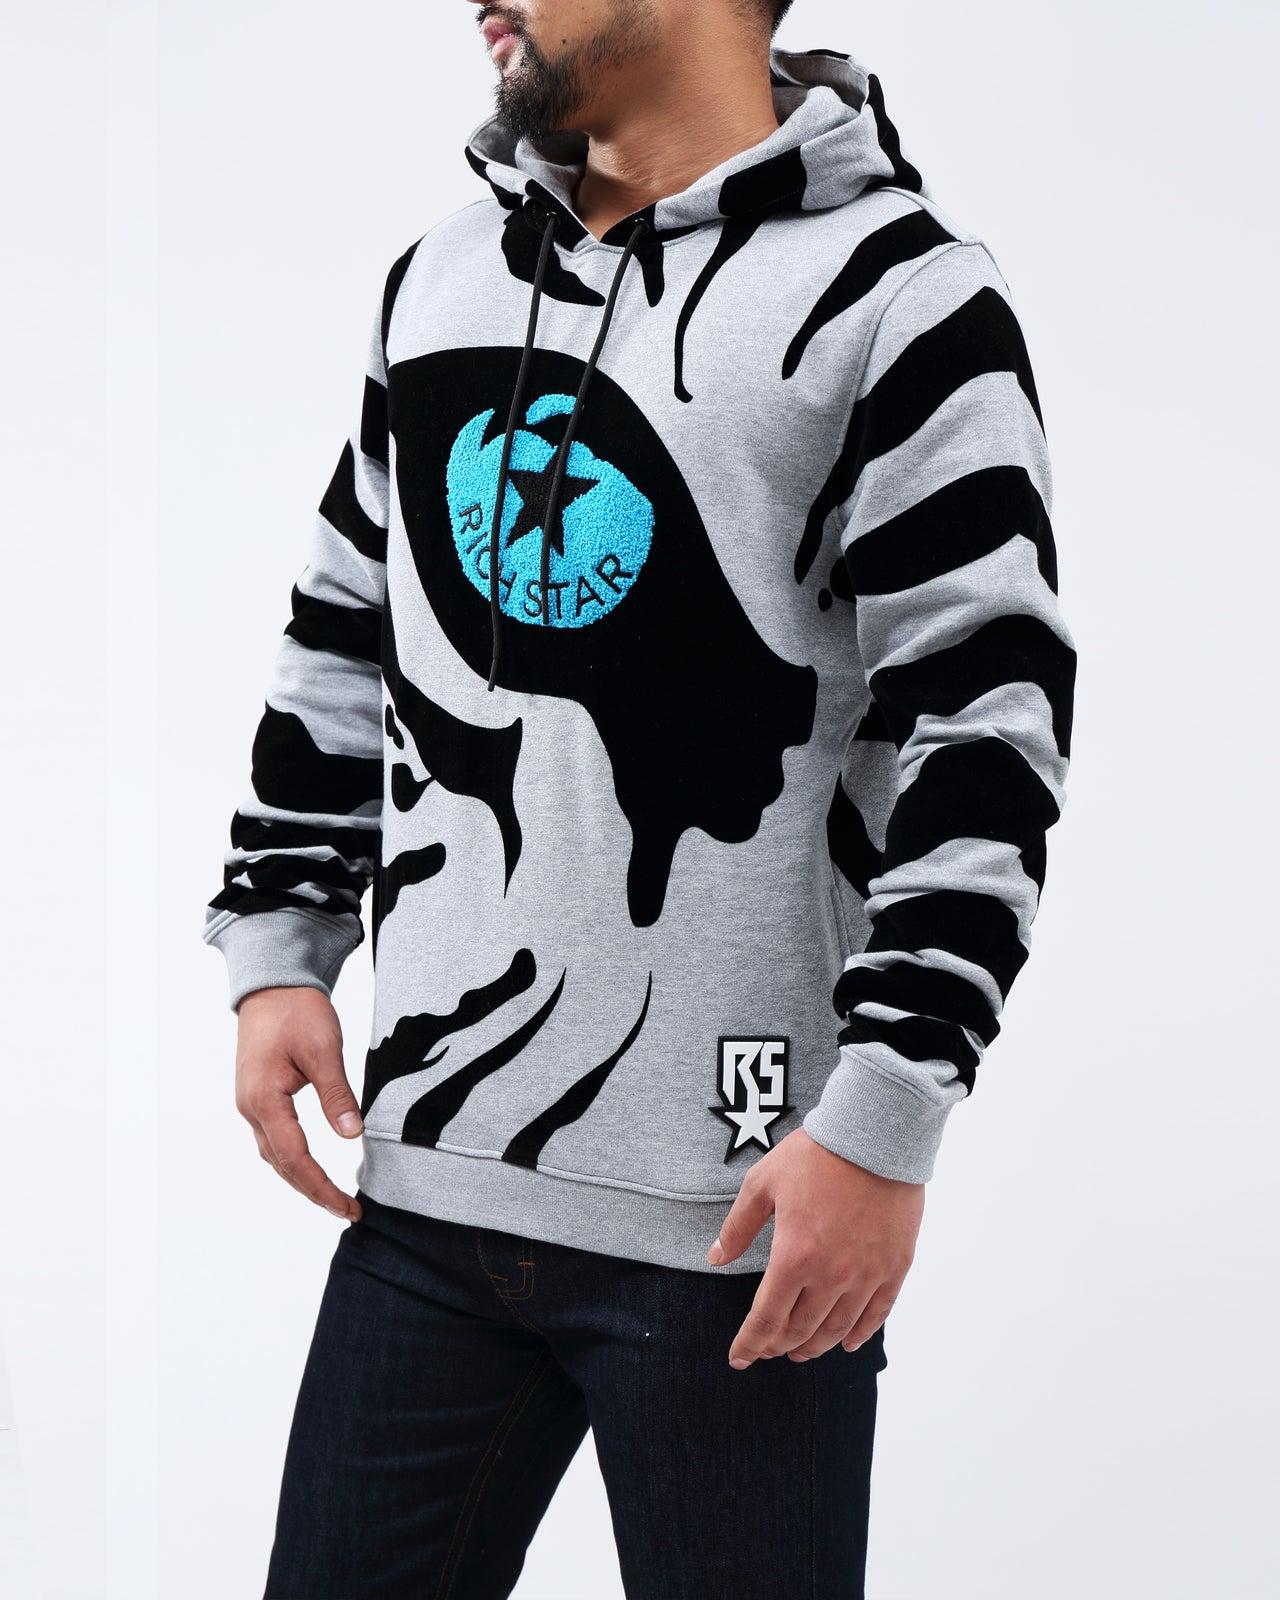 RS Eye Of the Tiger Hoody - Color: heather gray